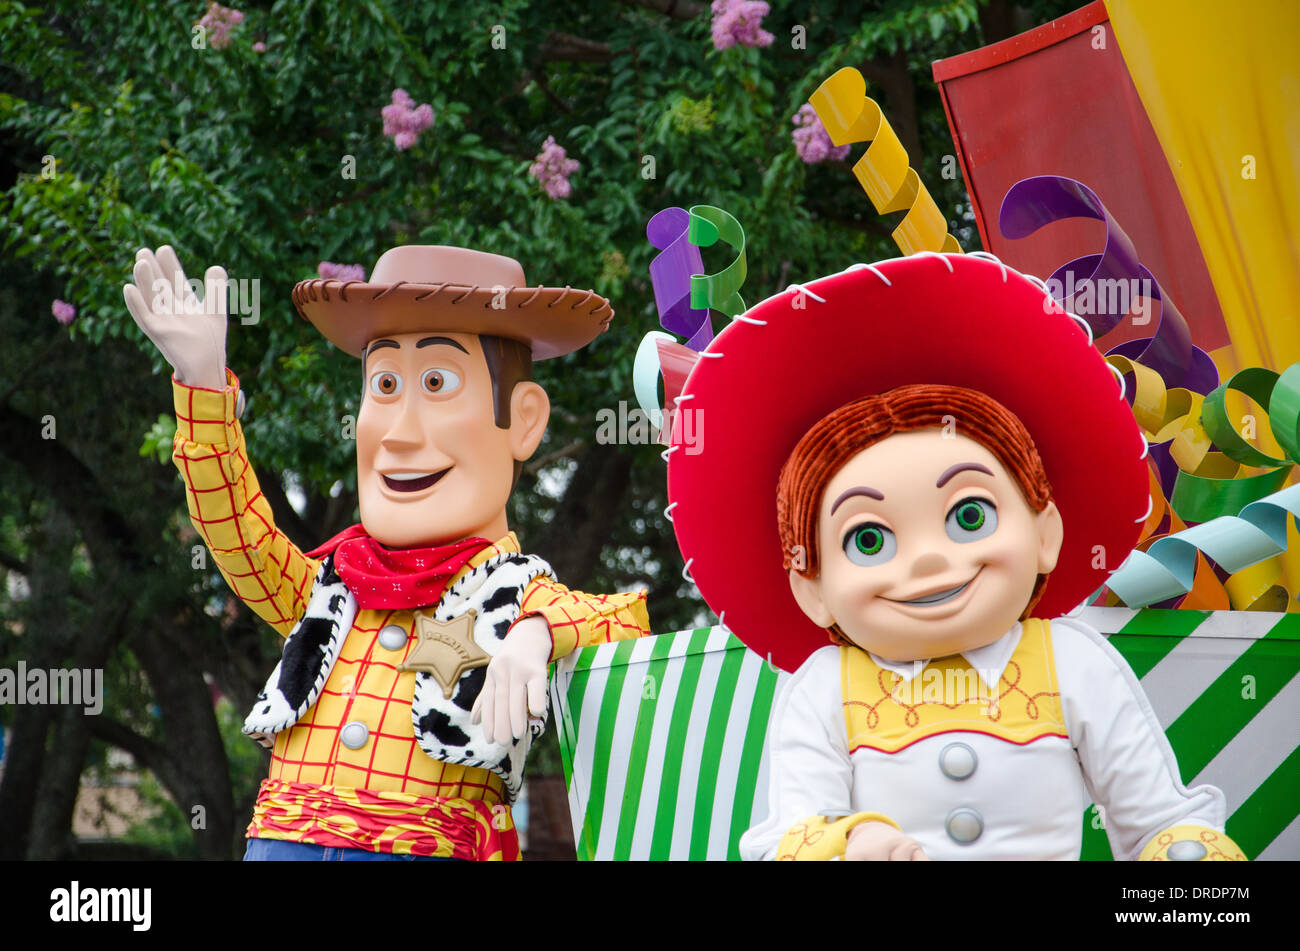 Woody and Jessie from Toy Story in the Magic Kingdom Parade at Walt Disney World Florida - Stock Image